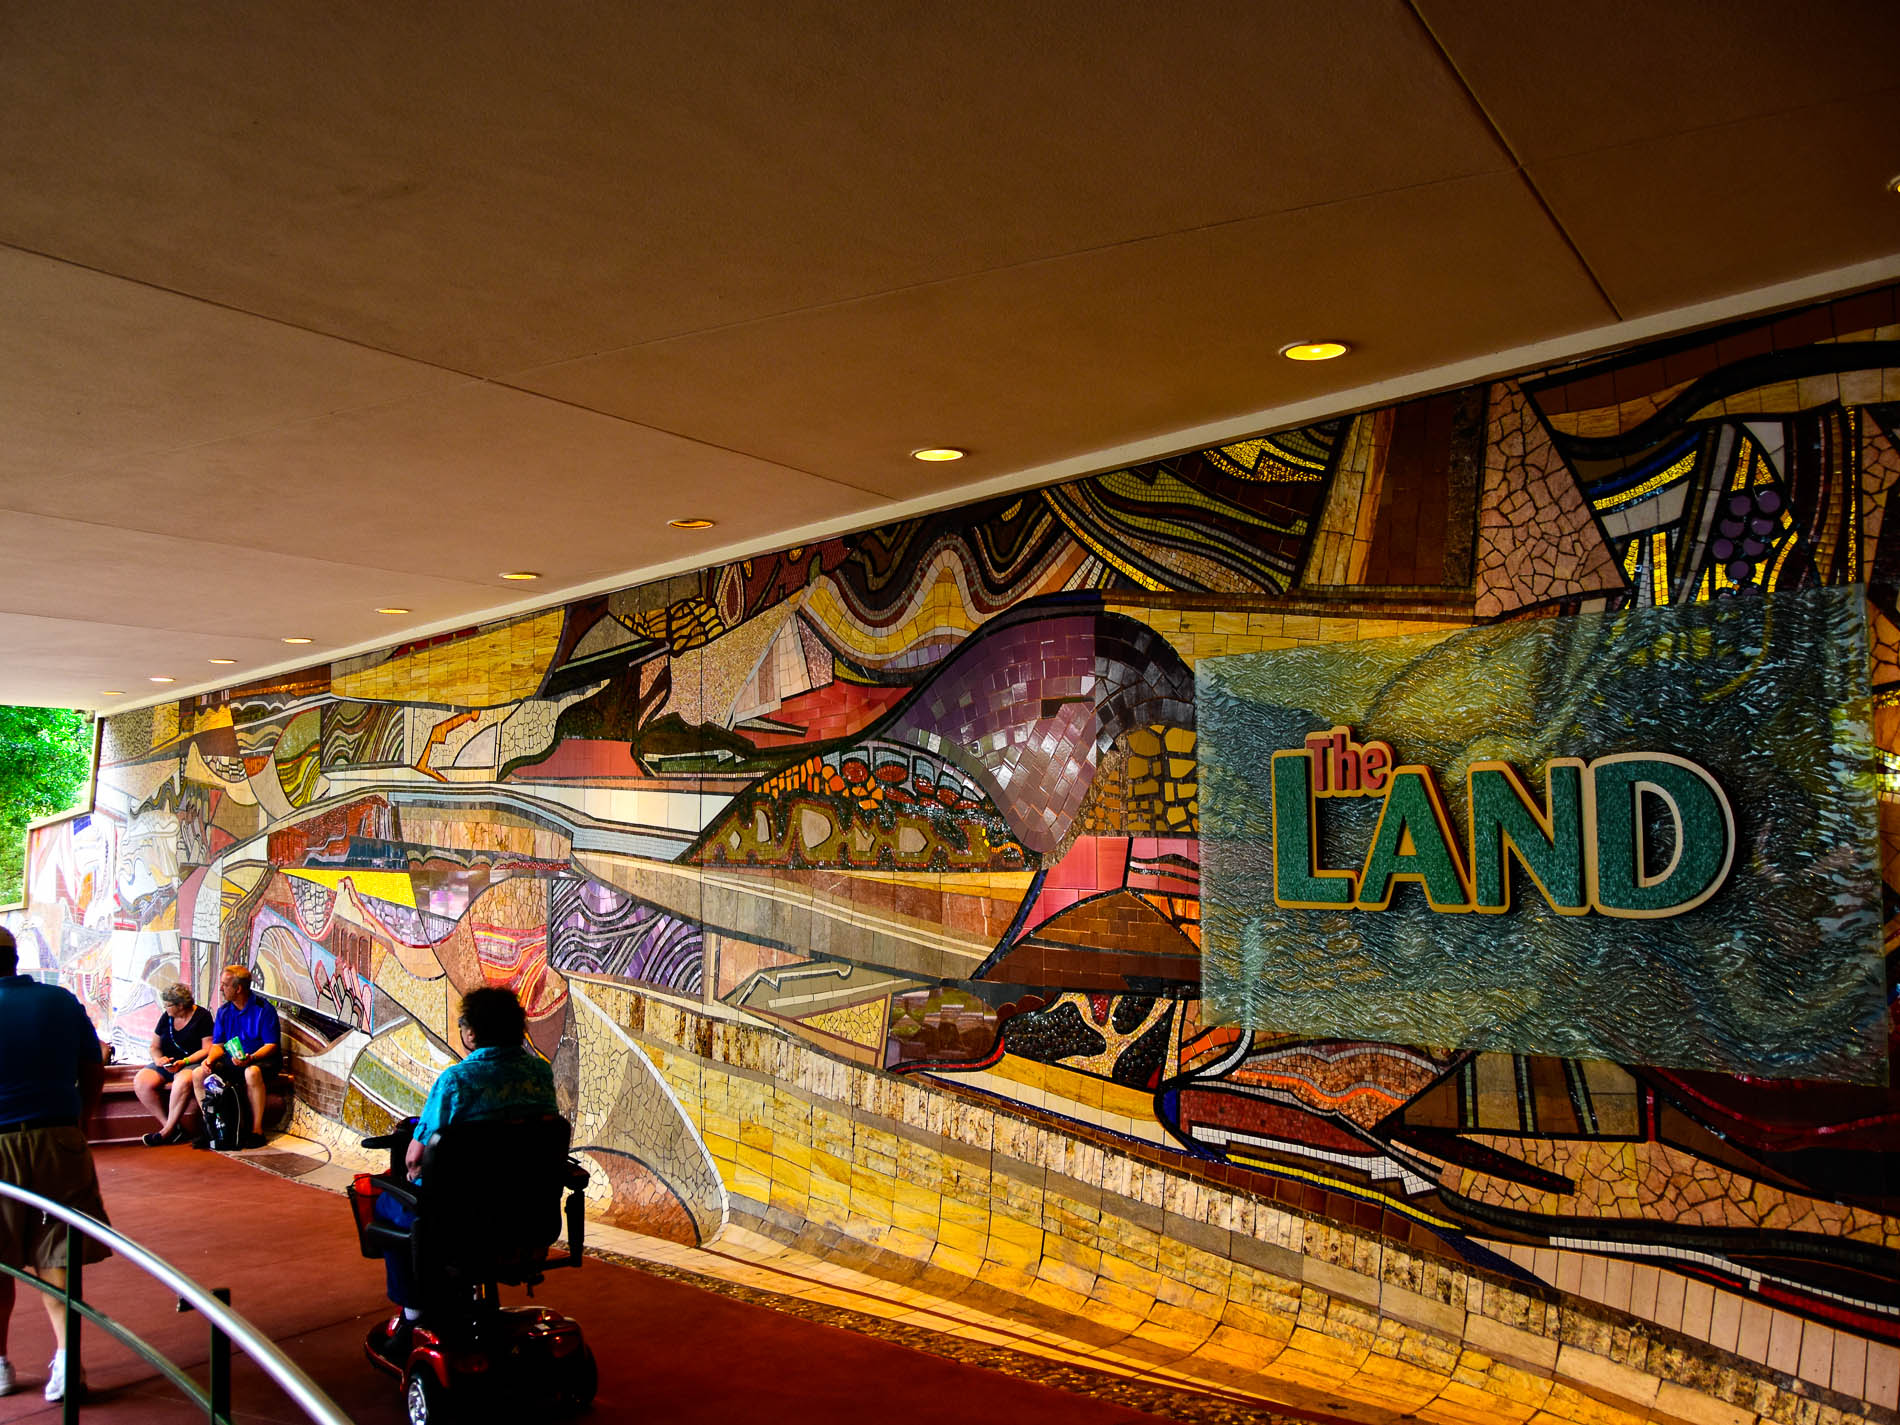 Mouseplanet - The Land at Epcot: A Photo Tour by Donald and Bonnie Fink